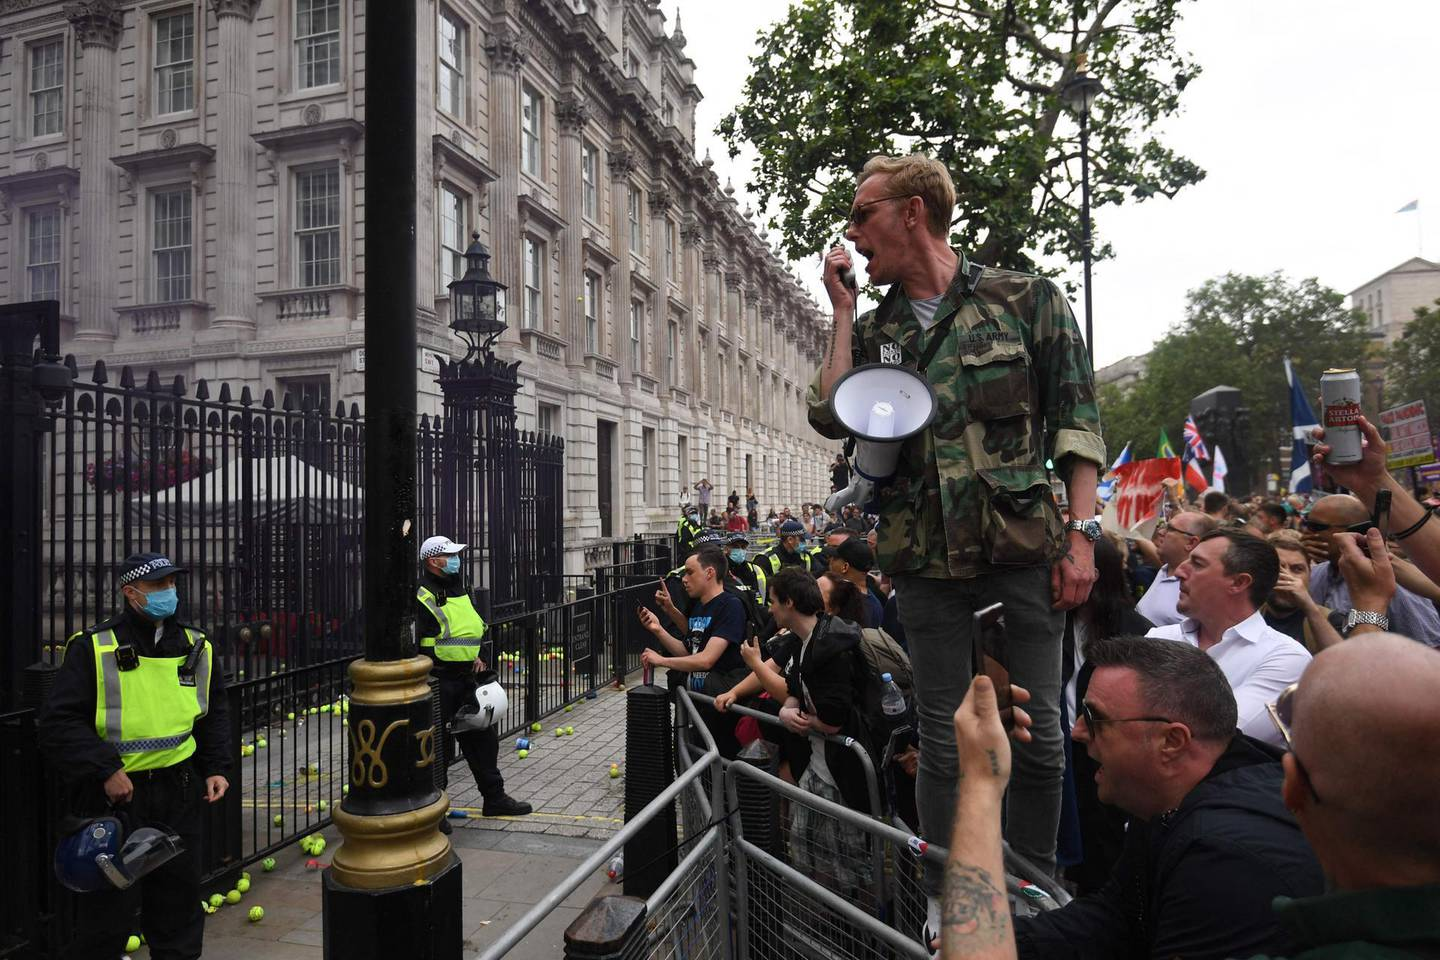 Laurence Fox, Reclaim party leader speaks during an anti-Vaccine and anti-lockdown demonstration outside Downing street in central London, on June 26, 2021.  / AFP / DANIEL LEAL-OLIVAS